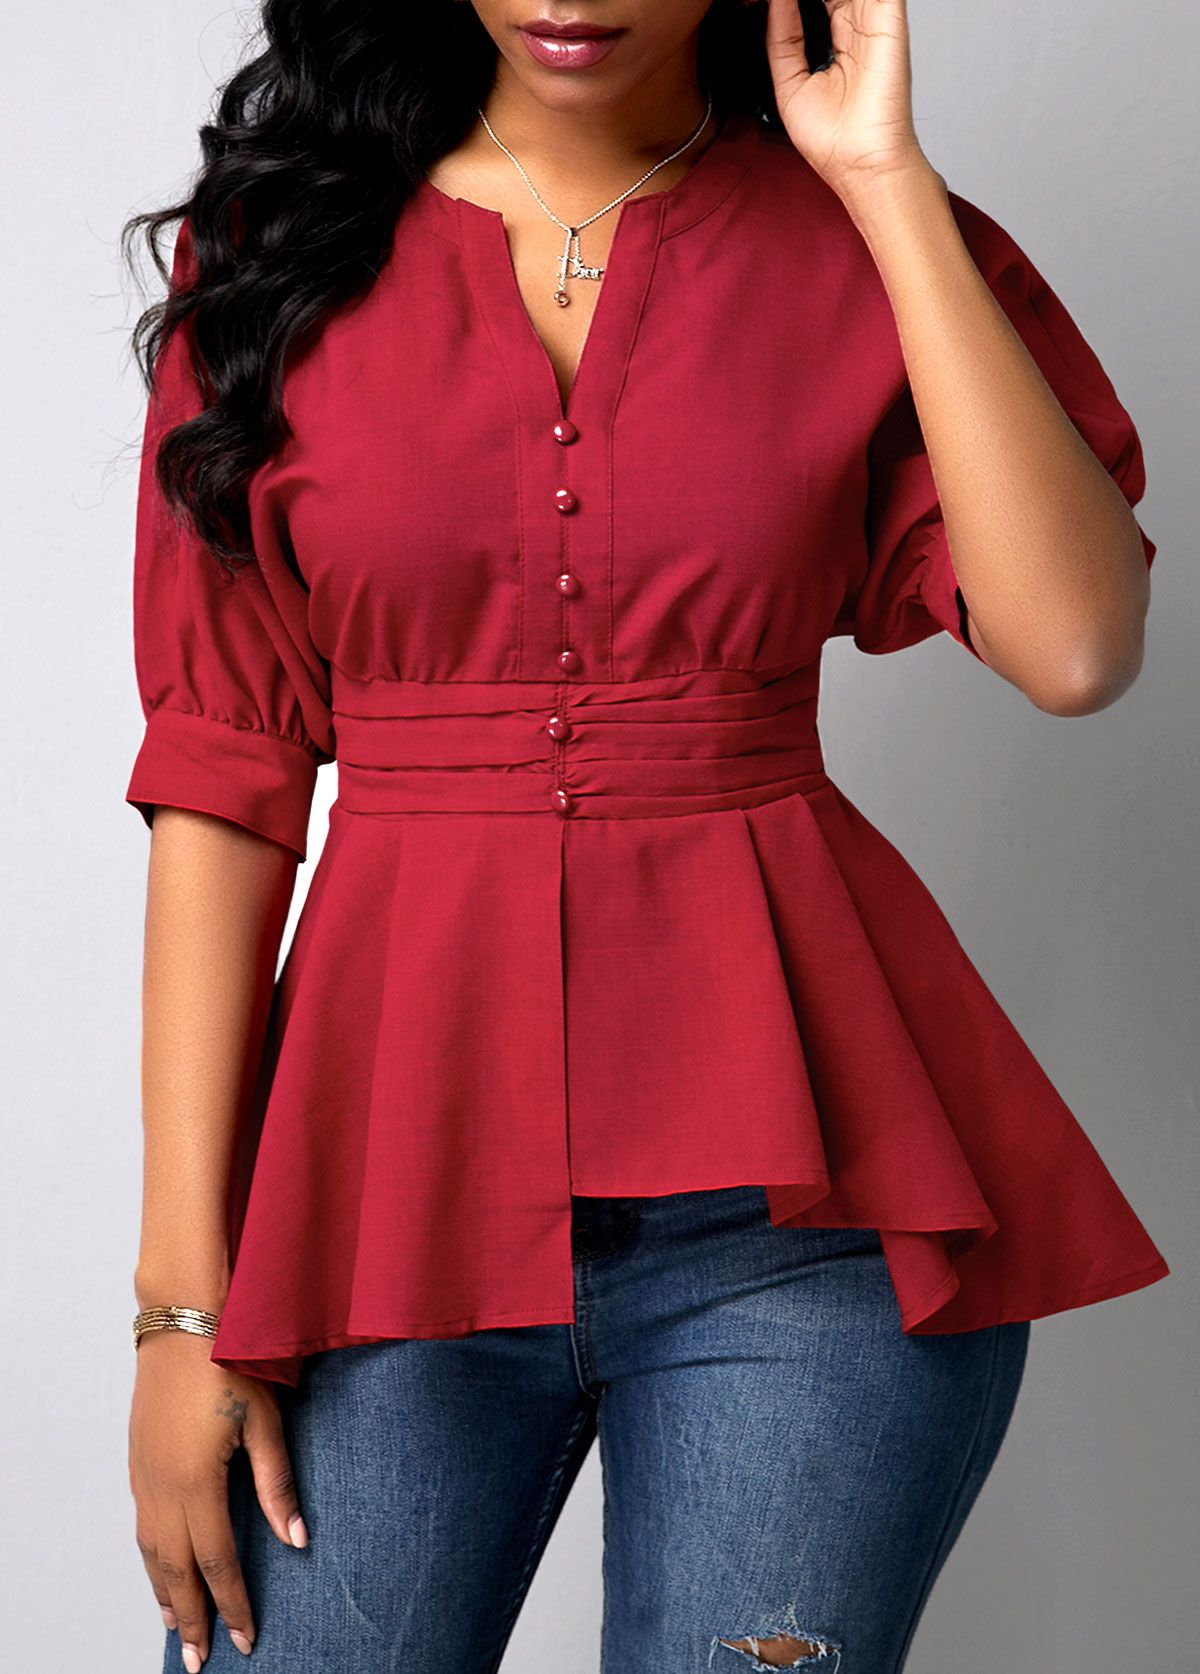 Peplum Waist Wine Red Button Detail Blouse Rotita Com Usd 30 52 In 2020 Trendy Fashion Tops Trendy Tops For Women Wine Red Blouse